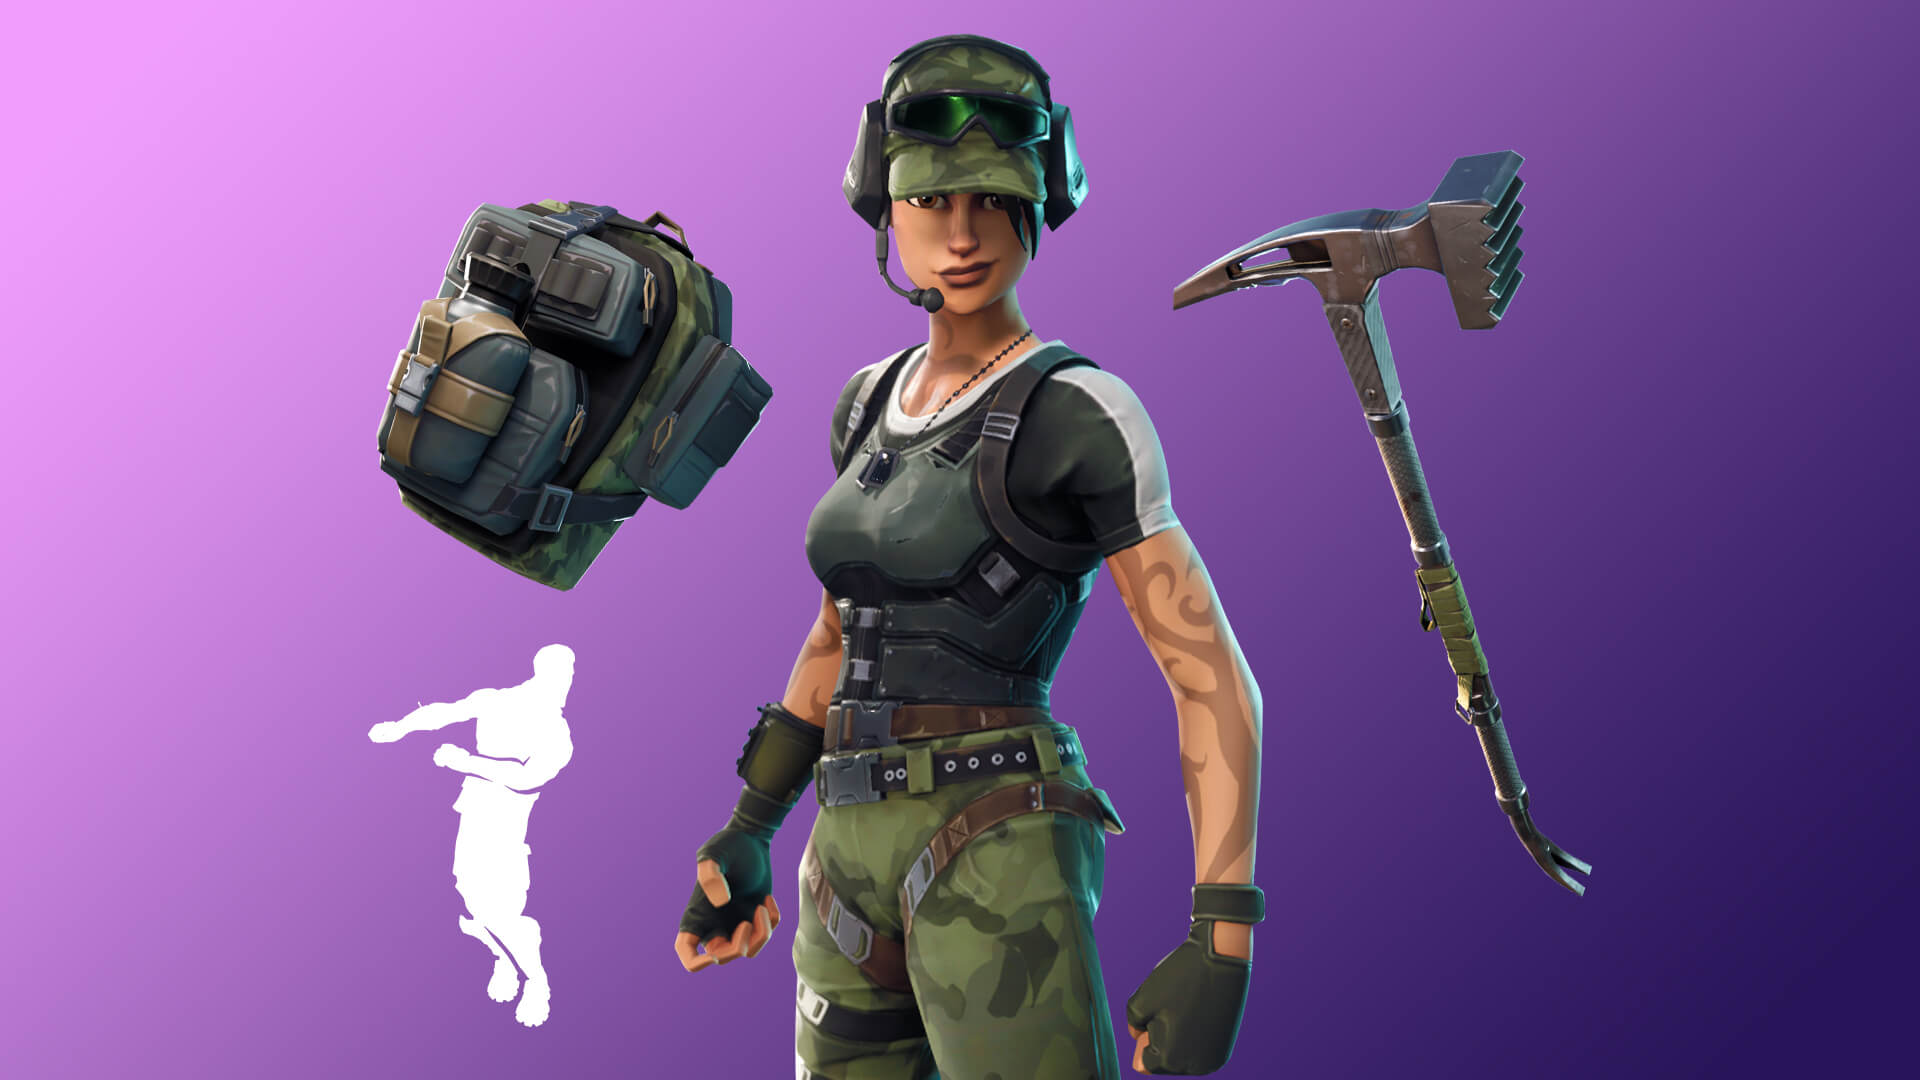 fortnite - link twitch to fortnite ps4